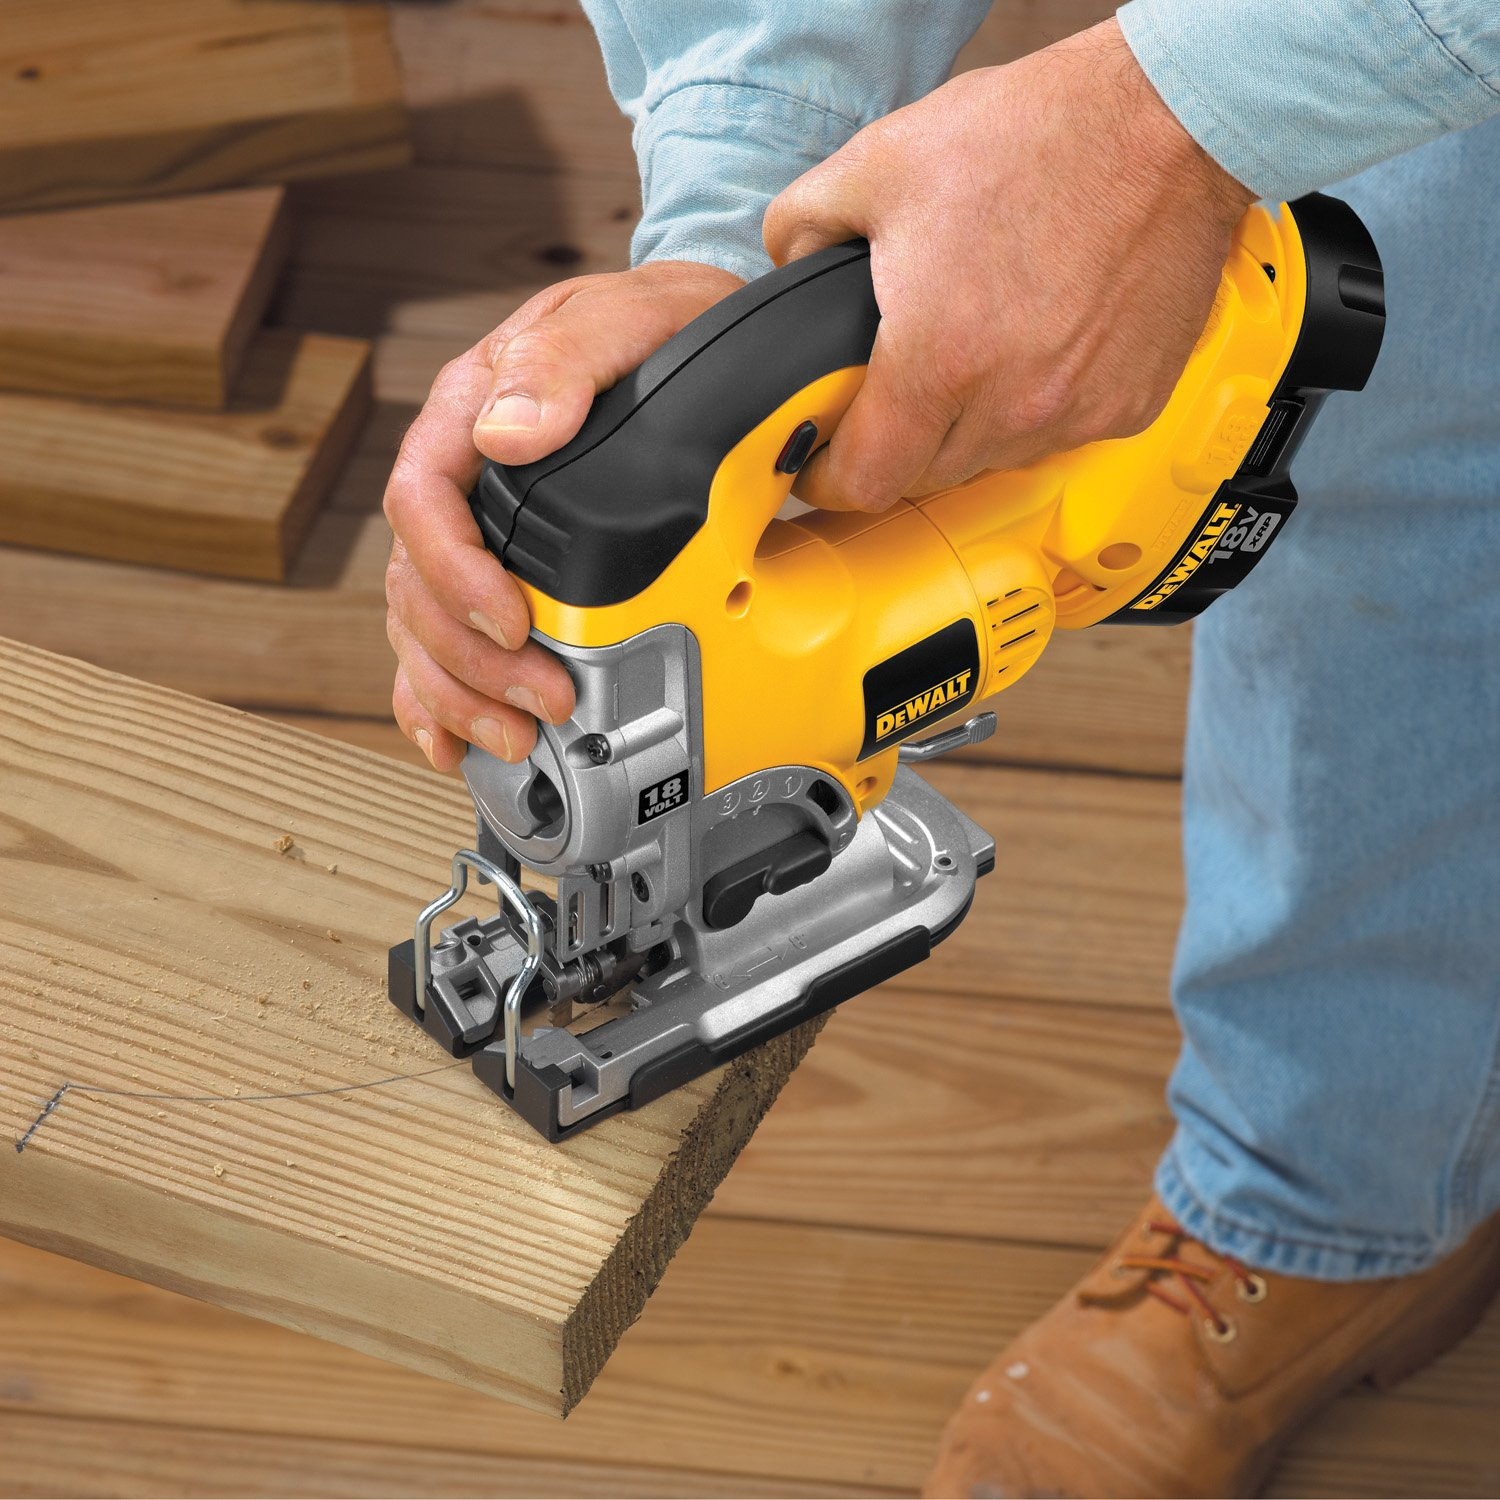 Dewalt dc330k heavy duty 18 volt ni cad cordless top handle jig saw dewalt dc330k heavy duty 18 volt ni cad cordless top handle jig saw kit power jig saws amazon greentooth Choice Image